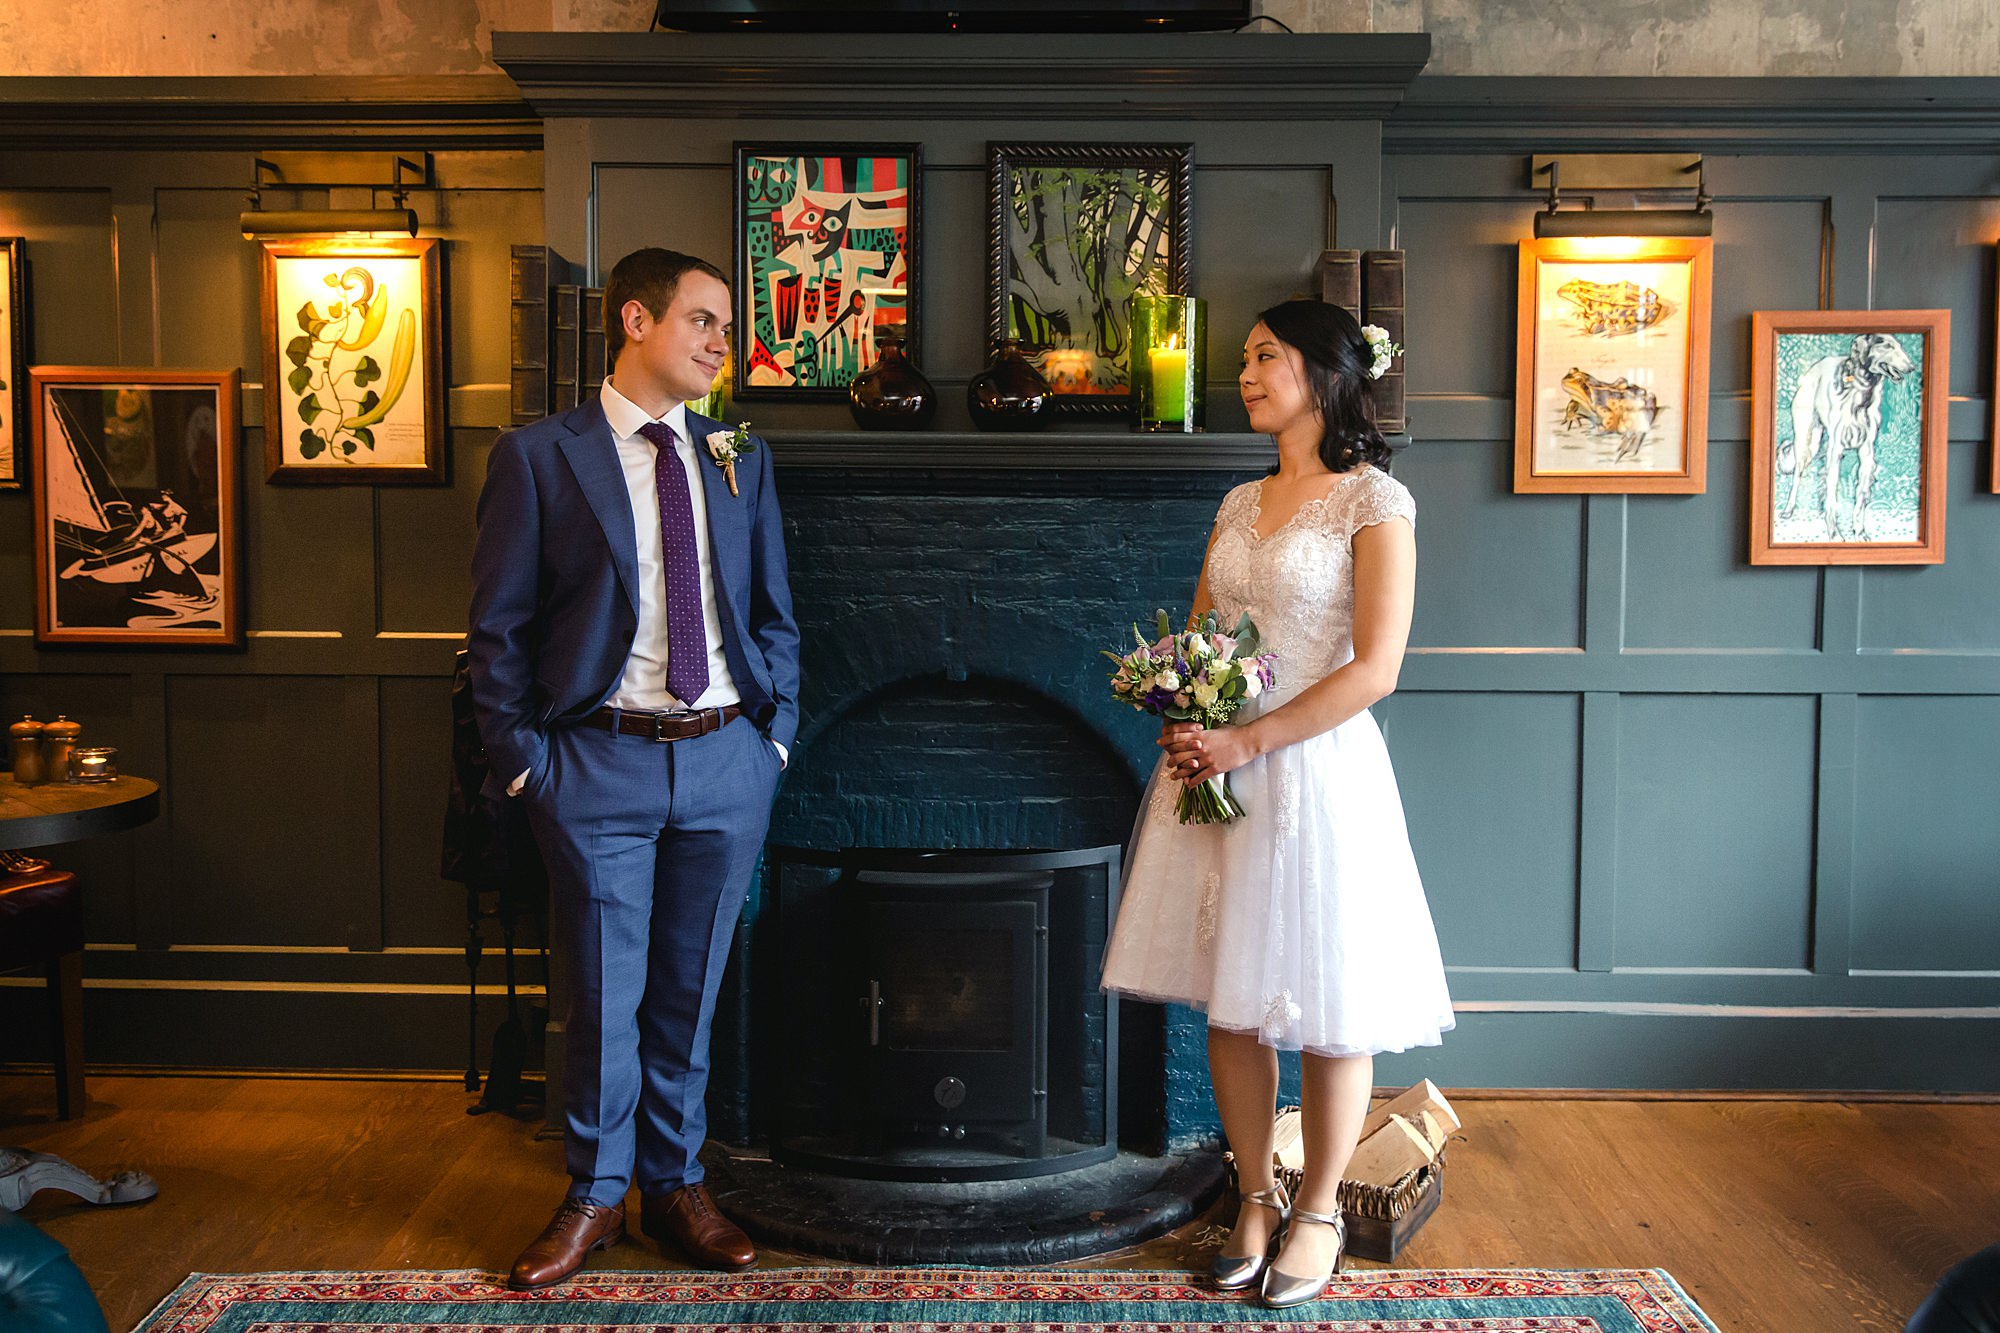 Wandsworth pub wedding couple by fireplace